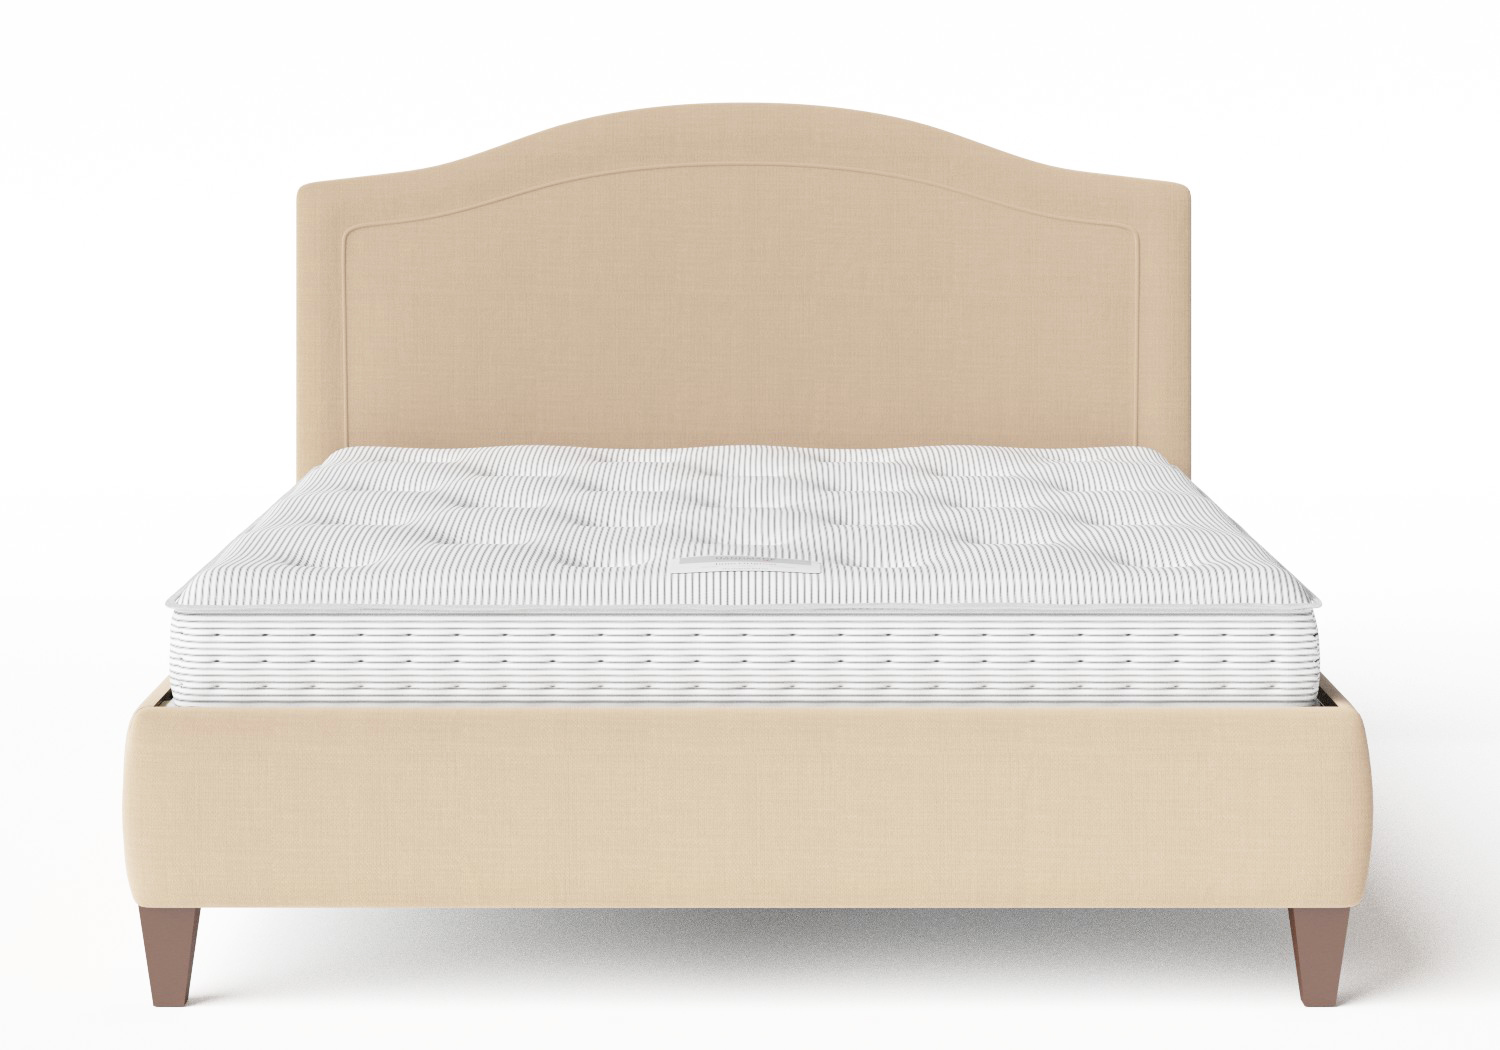 Daniella Upholstered bed in Natural fabric shown with Juno 1 mattress